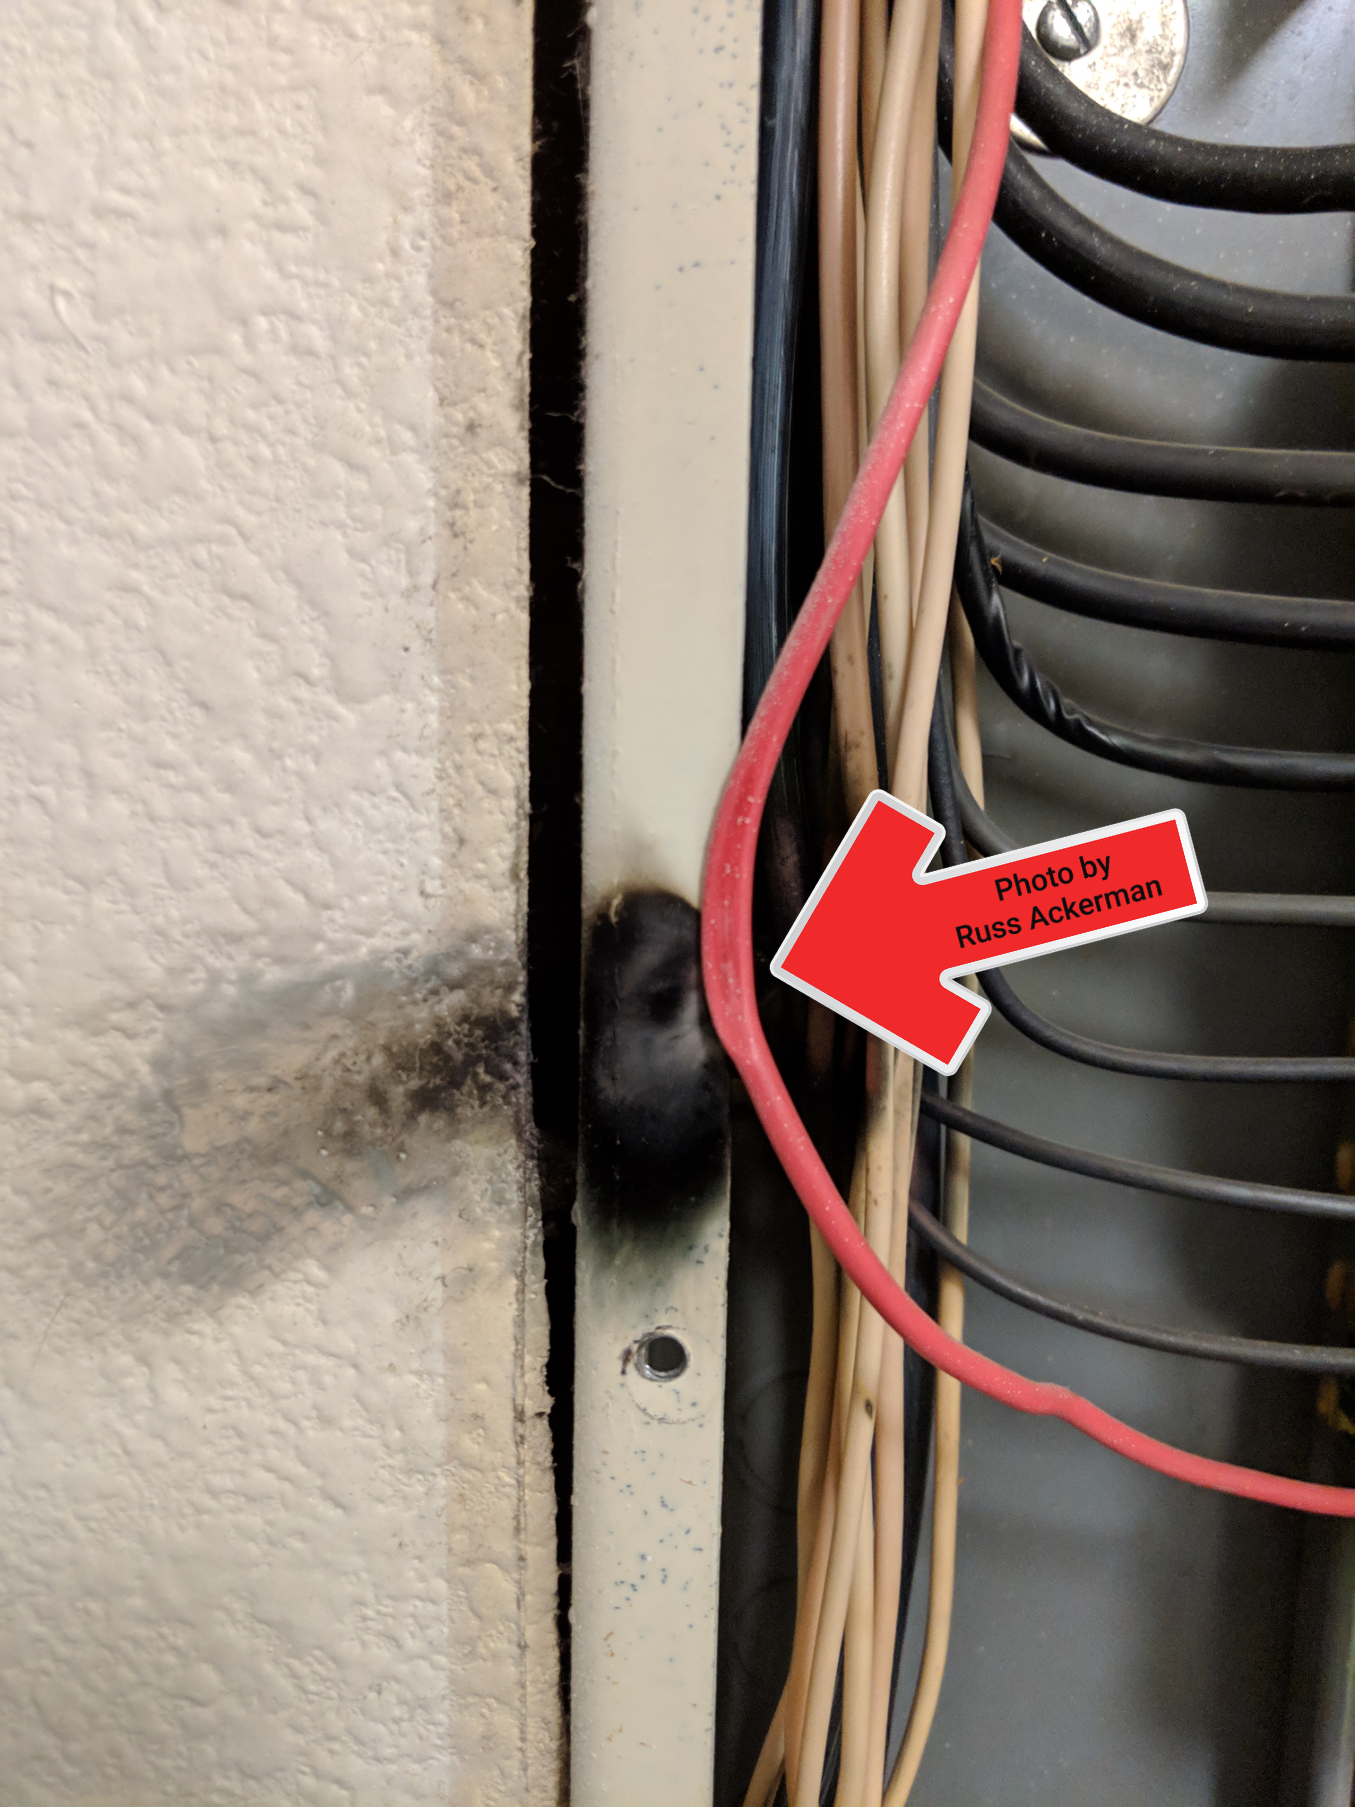 This electrical panel deadfront cover was mashing a wire, when I removed the cover it shorted out with a loud pop and arc. Always give your inspector a lot of space when they're inspecting the electrical panel.